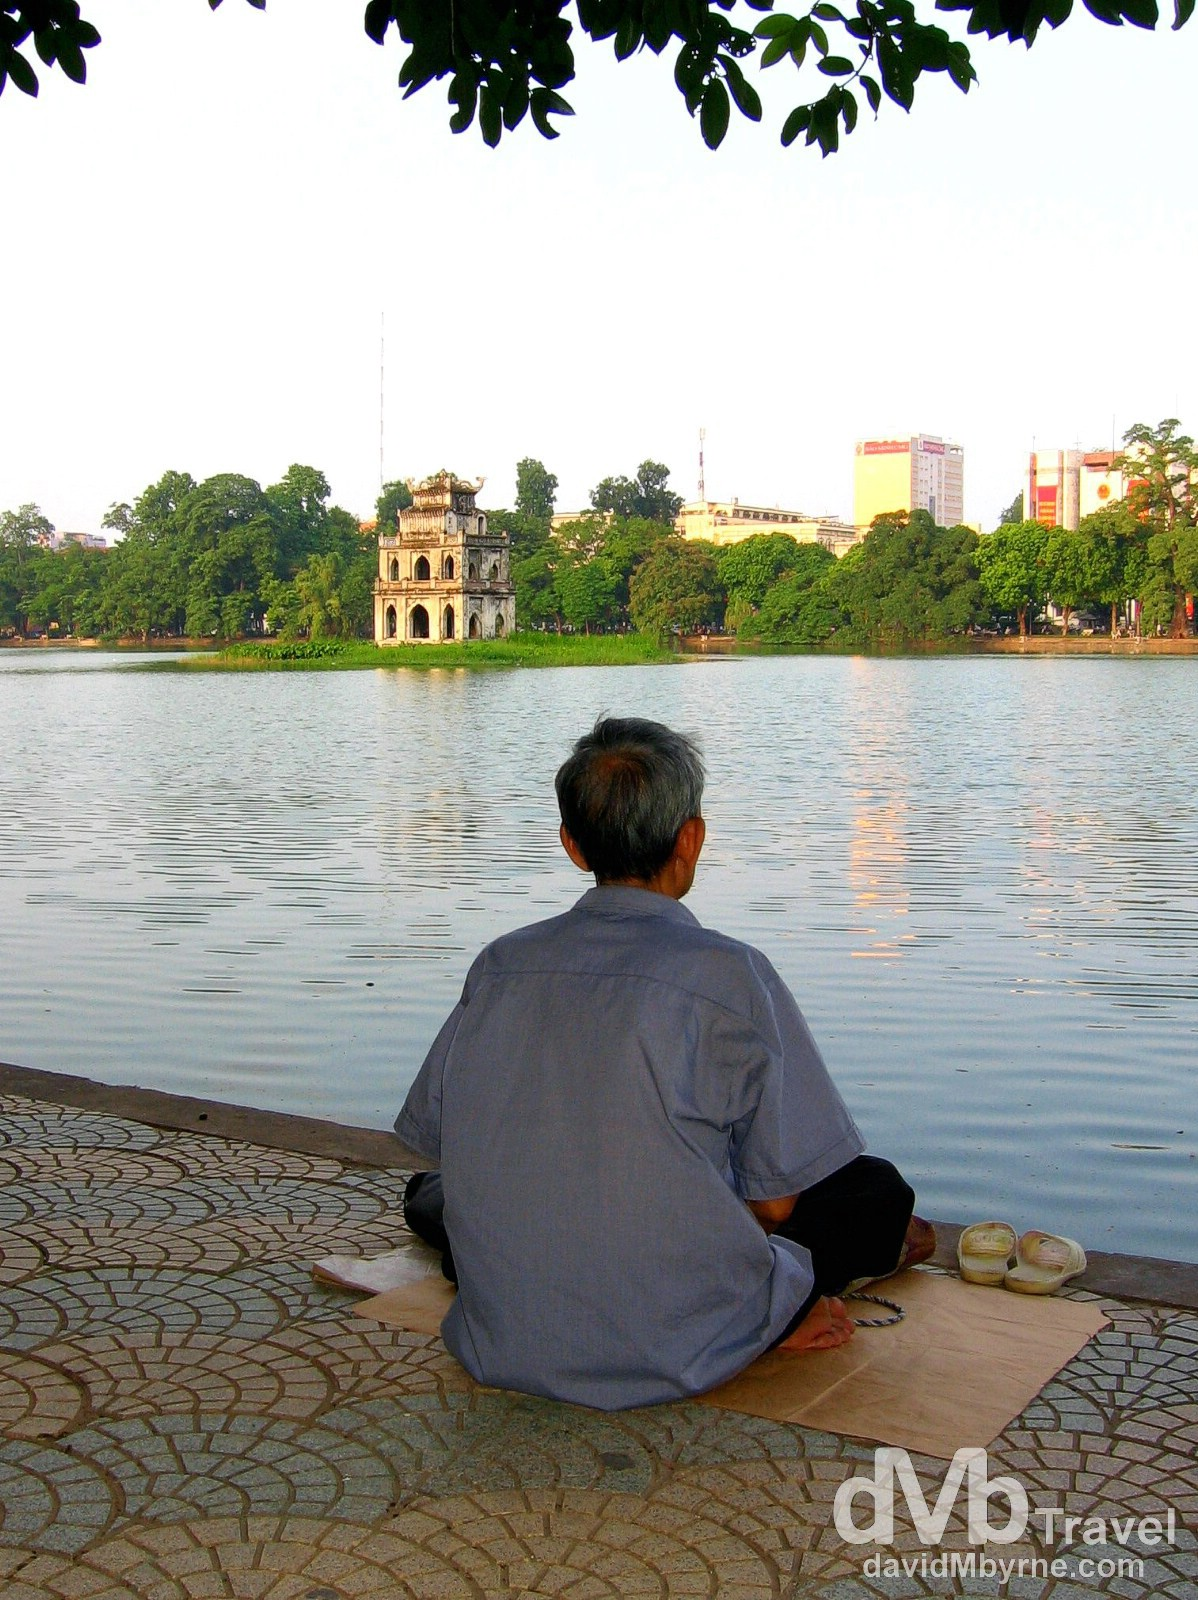 Sitting by the edge of Hoan Kiem Lake in Hanoi, Vietnam. September 5th, 2005.